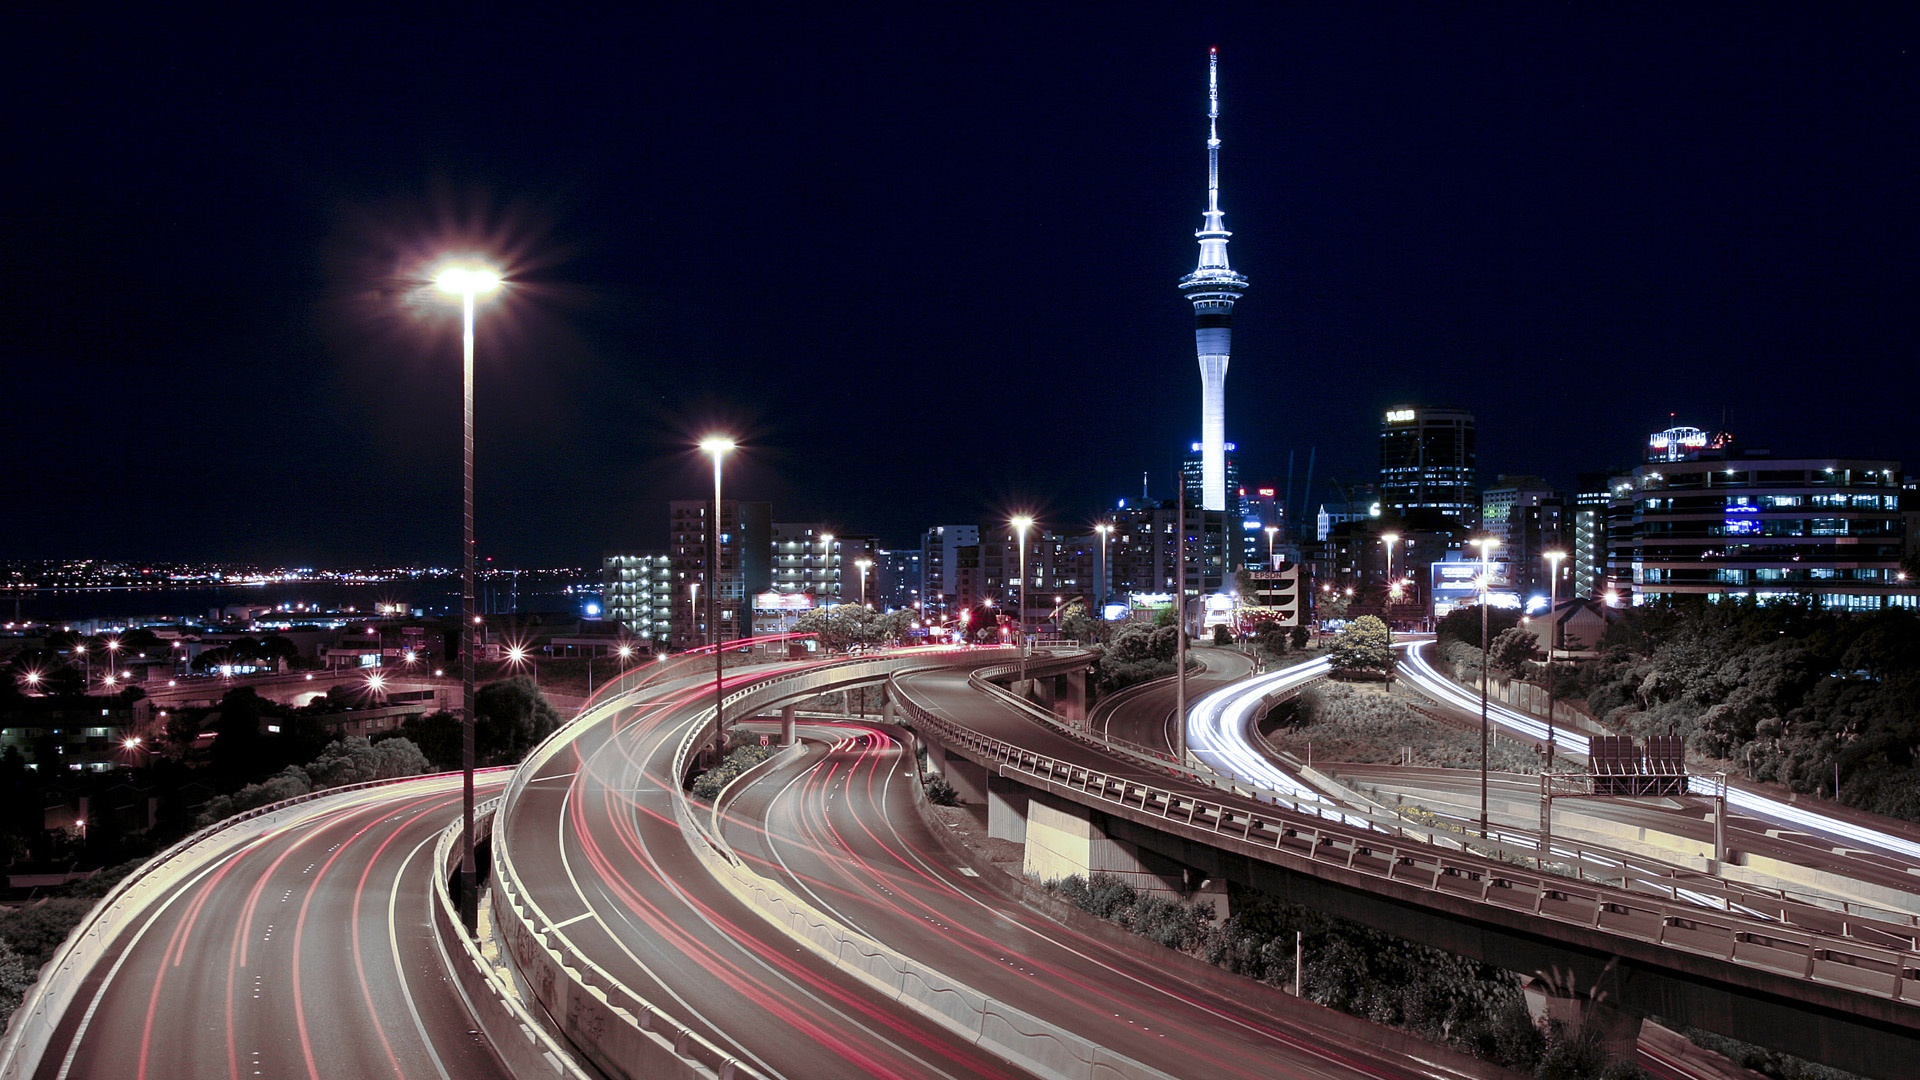 Full Hd Wallpaper Highway Sky Tower Night Auckland - Spaghetti Junction , HD Wallpaper & Backgrounds